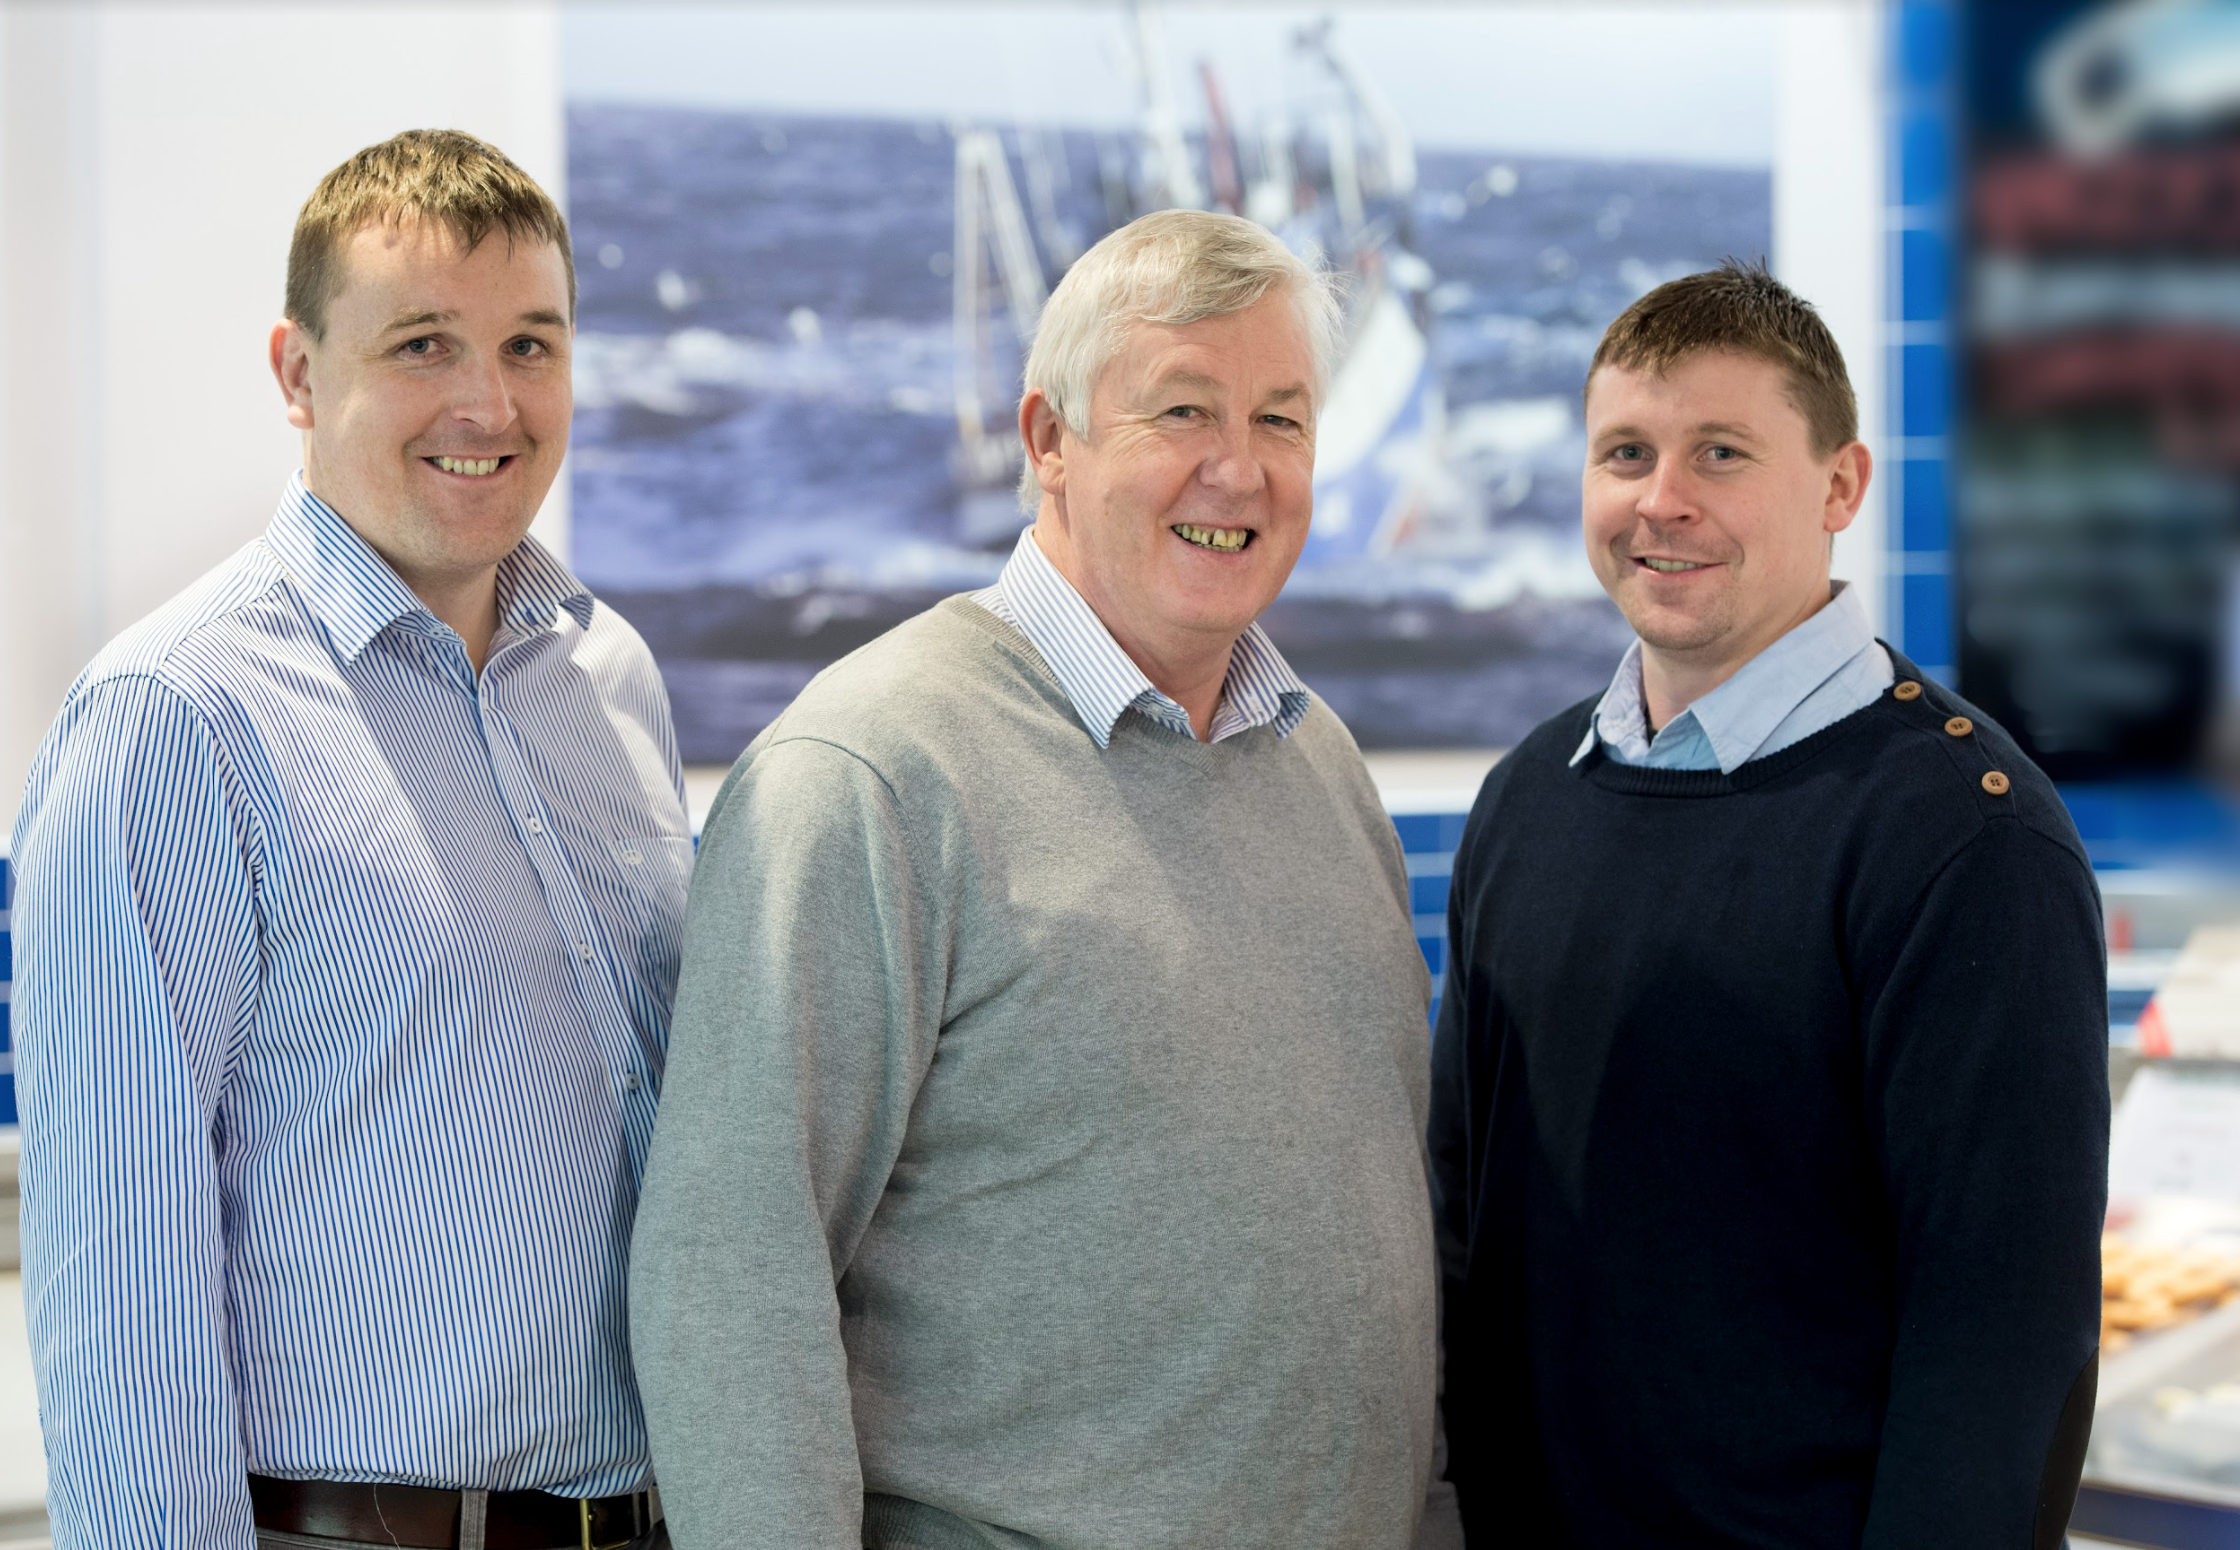 Colman Keohane of Keohane Seafood with his father Mike and brother Brian Keohane